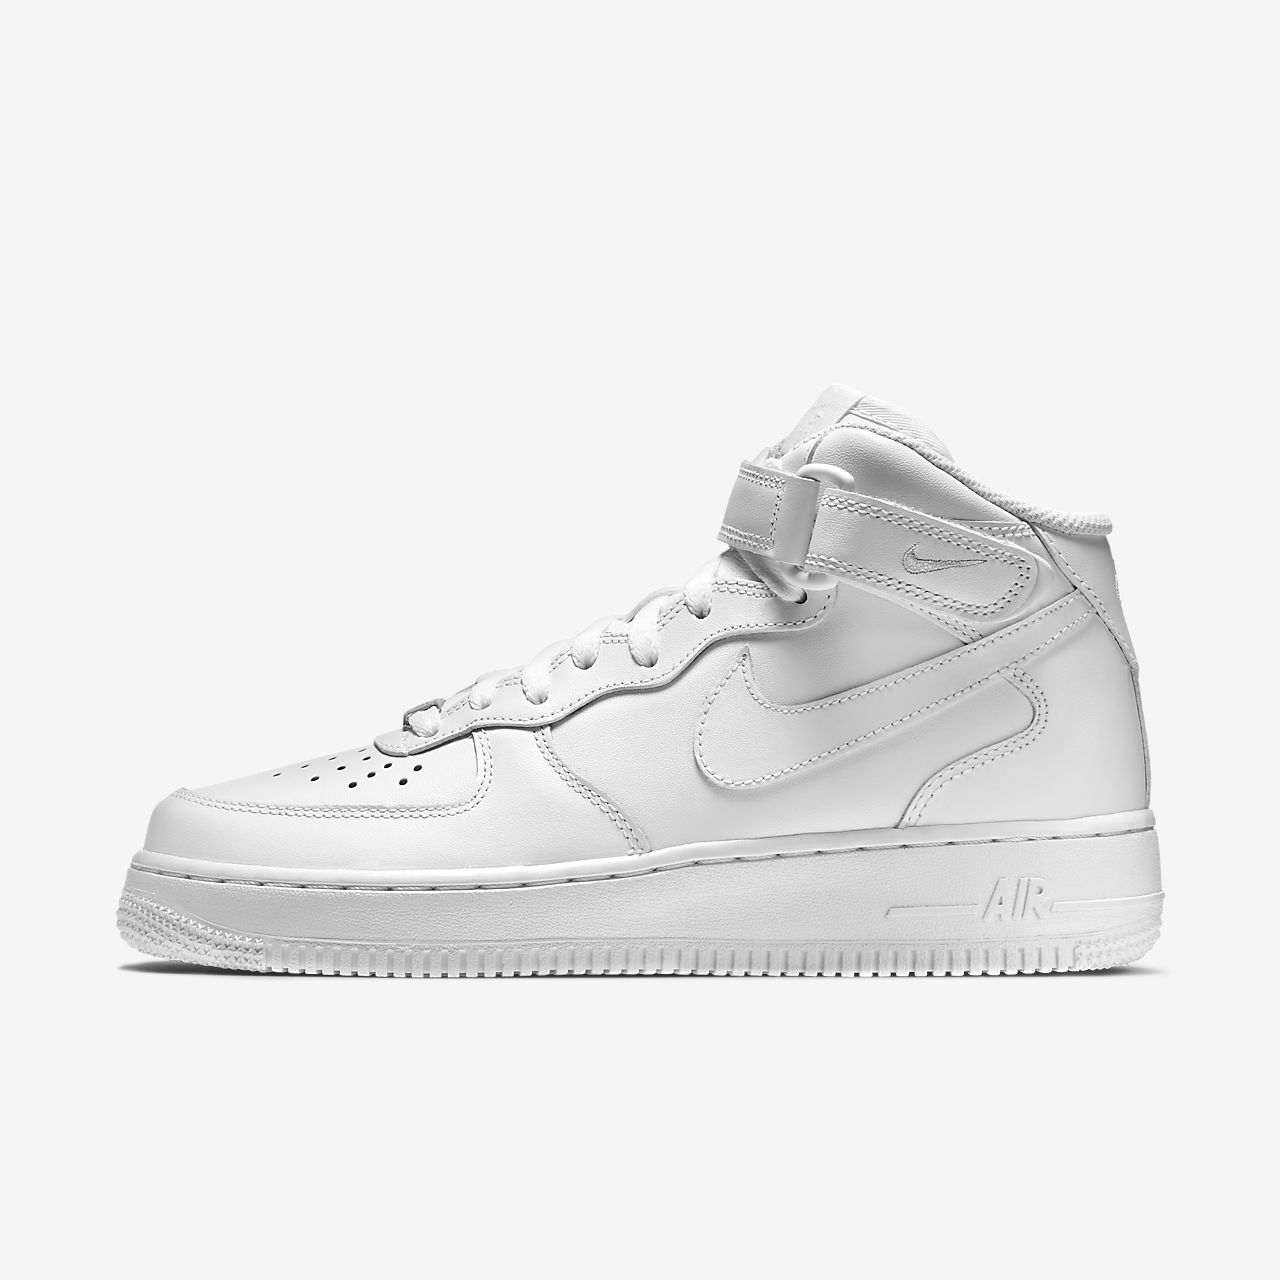 nike air force 1 07 women's shoe white ราคา